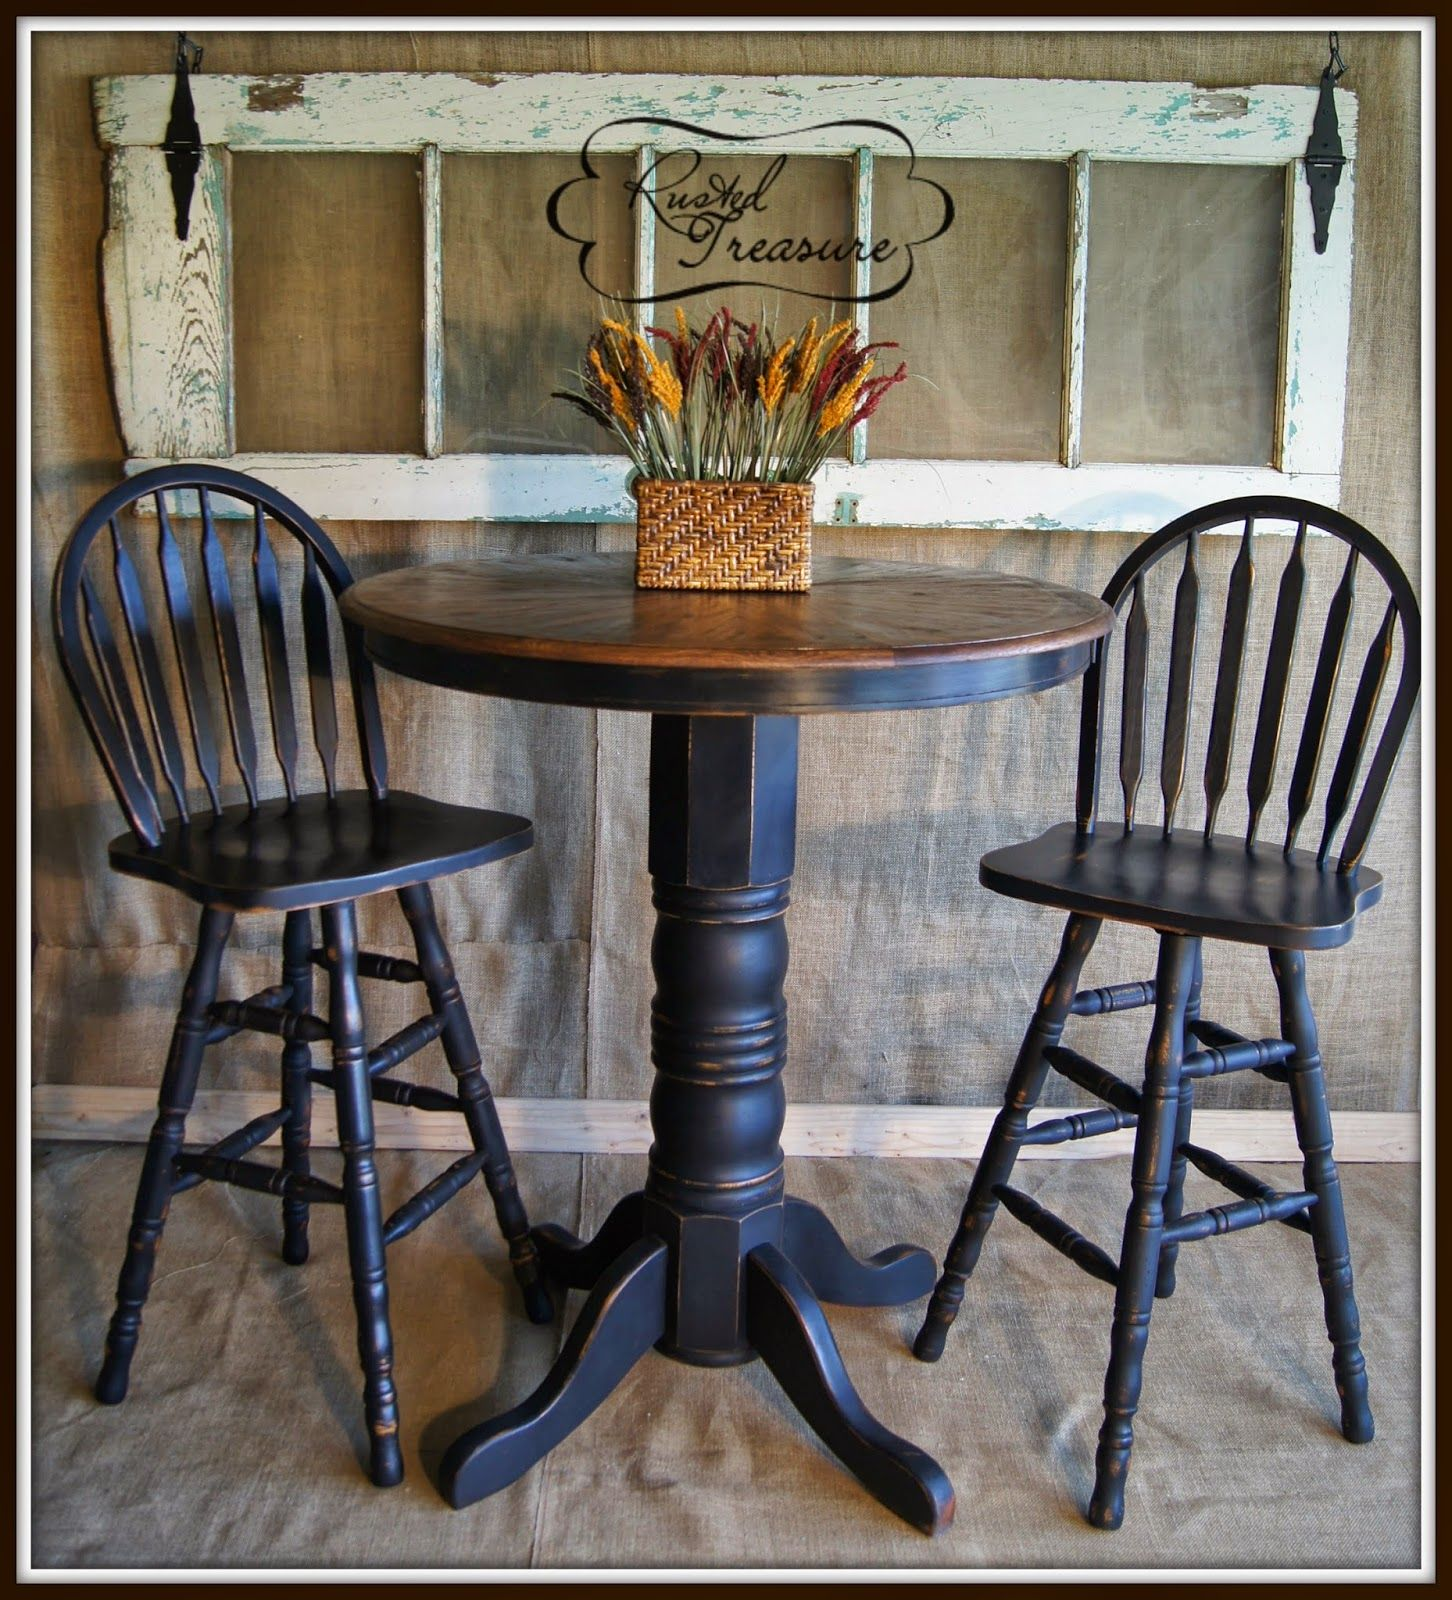 Distressed Black Bar Top Table And Chairs,diy,tutorial,old Door,rustic